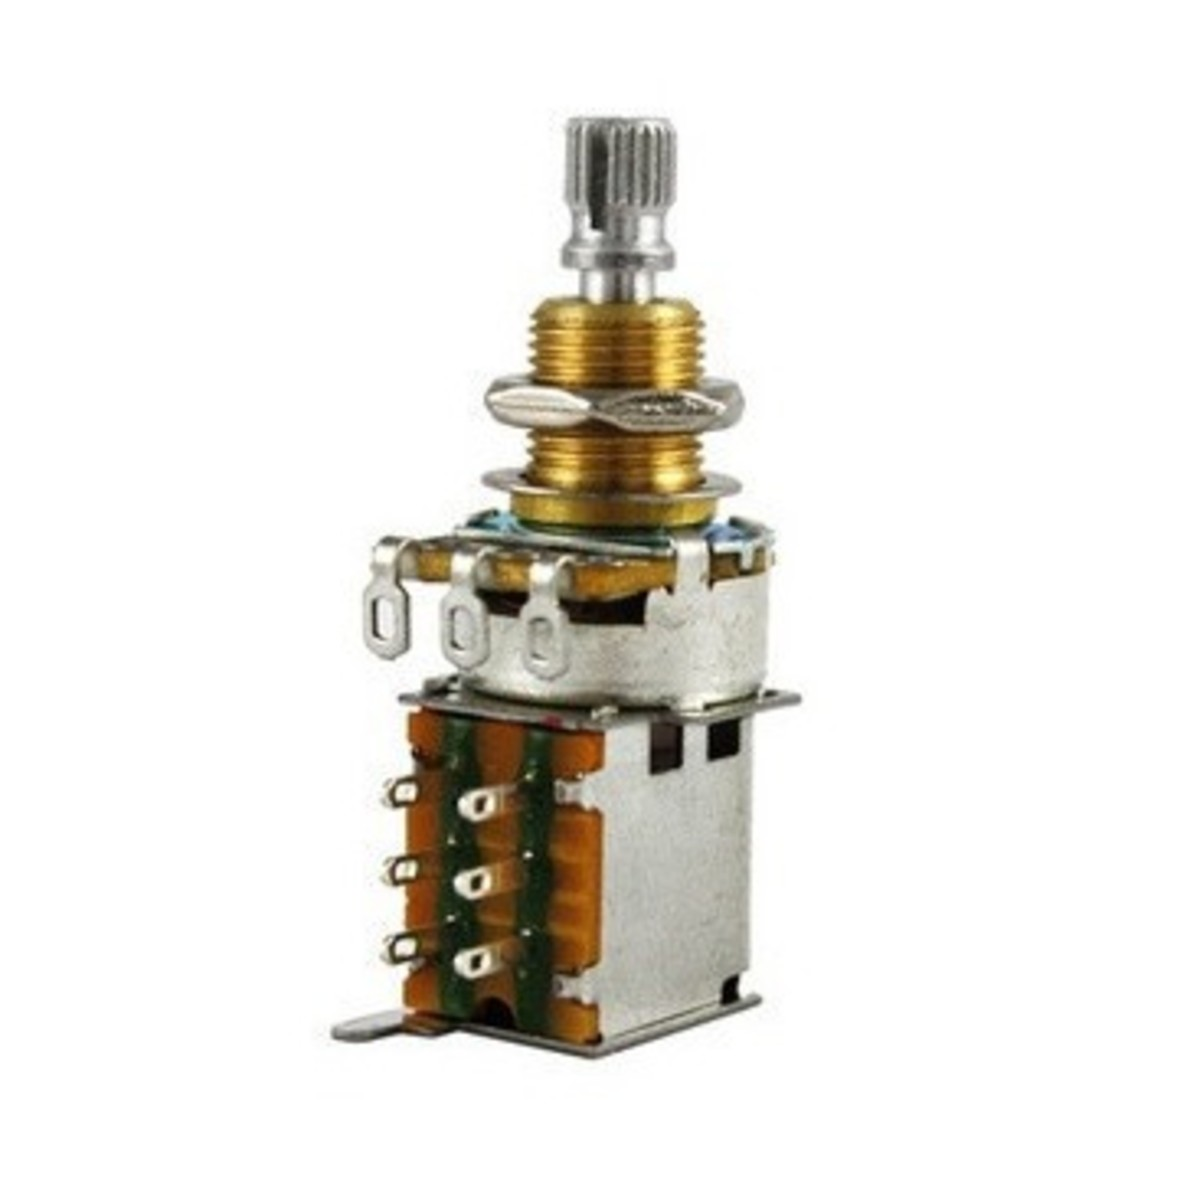 Image of Allparts 500K Push/Push Log Taper Potentiometer